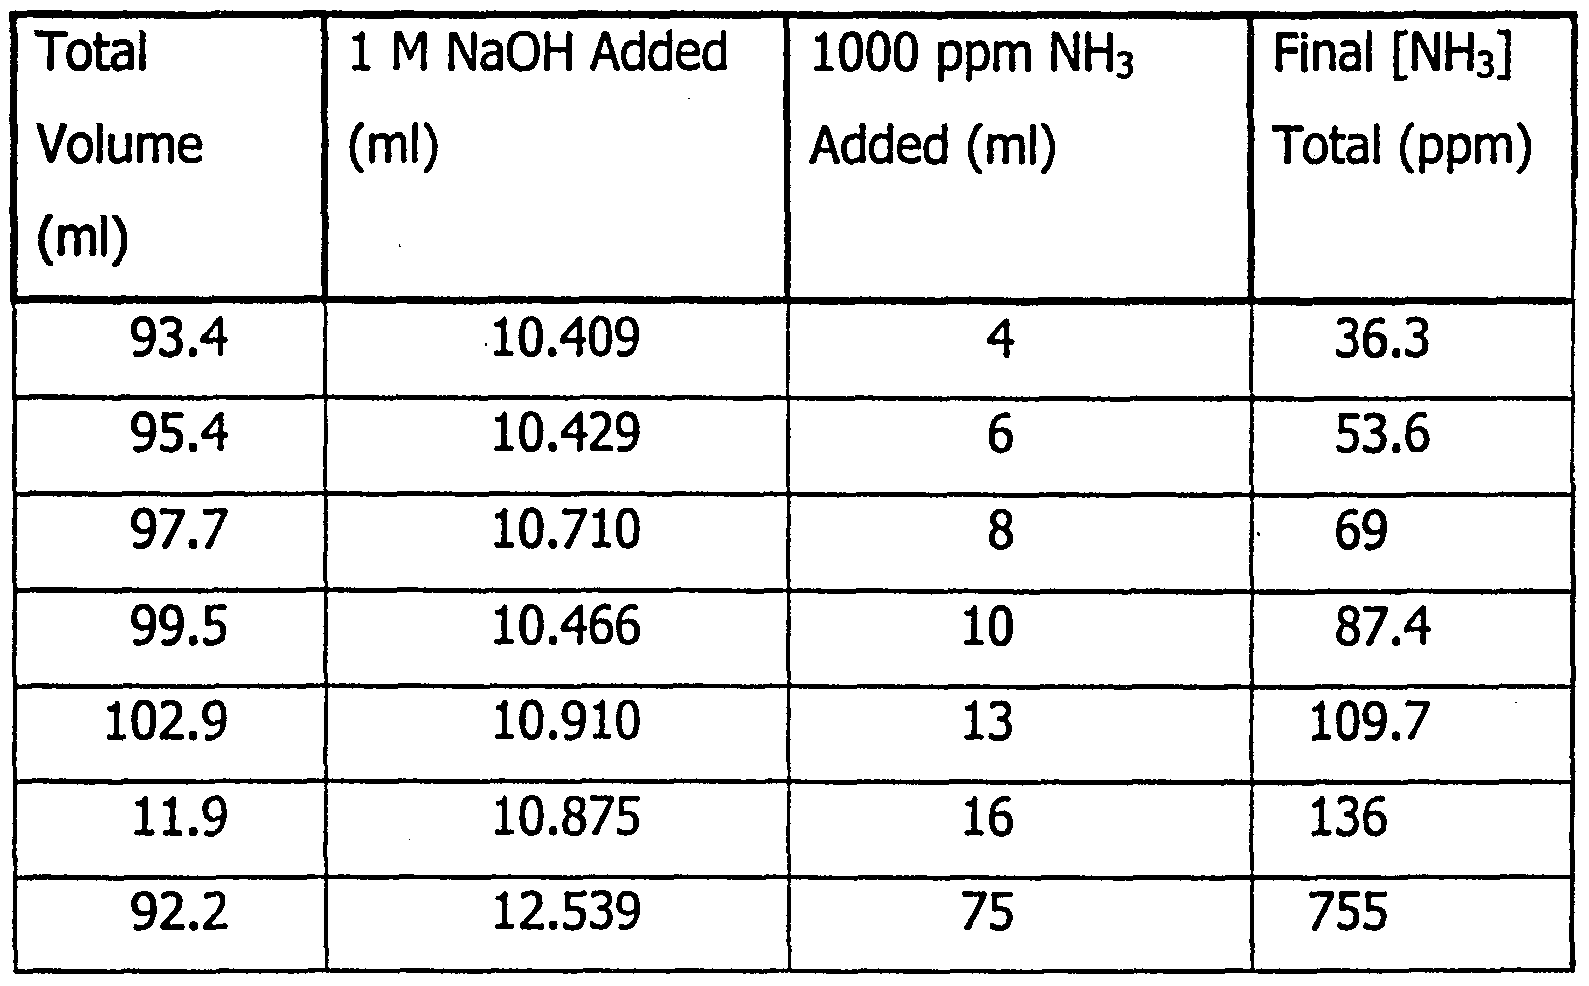 Chemical Equation For Ammonium Nitrate And Water